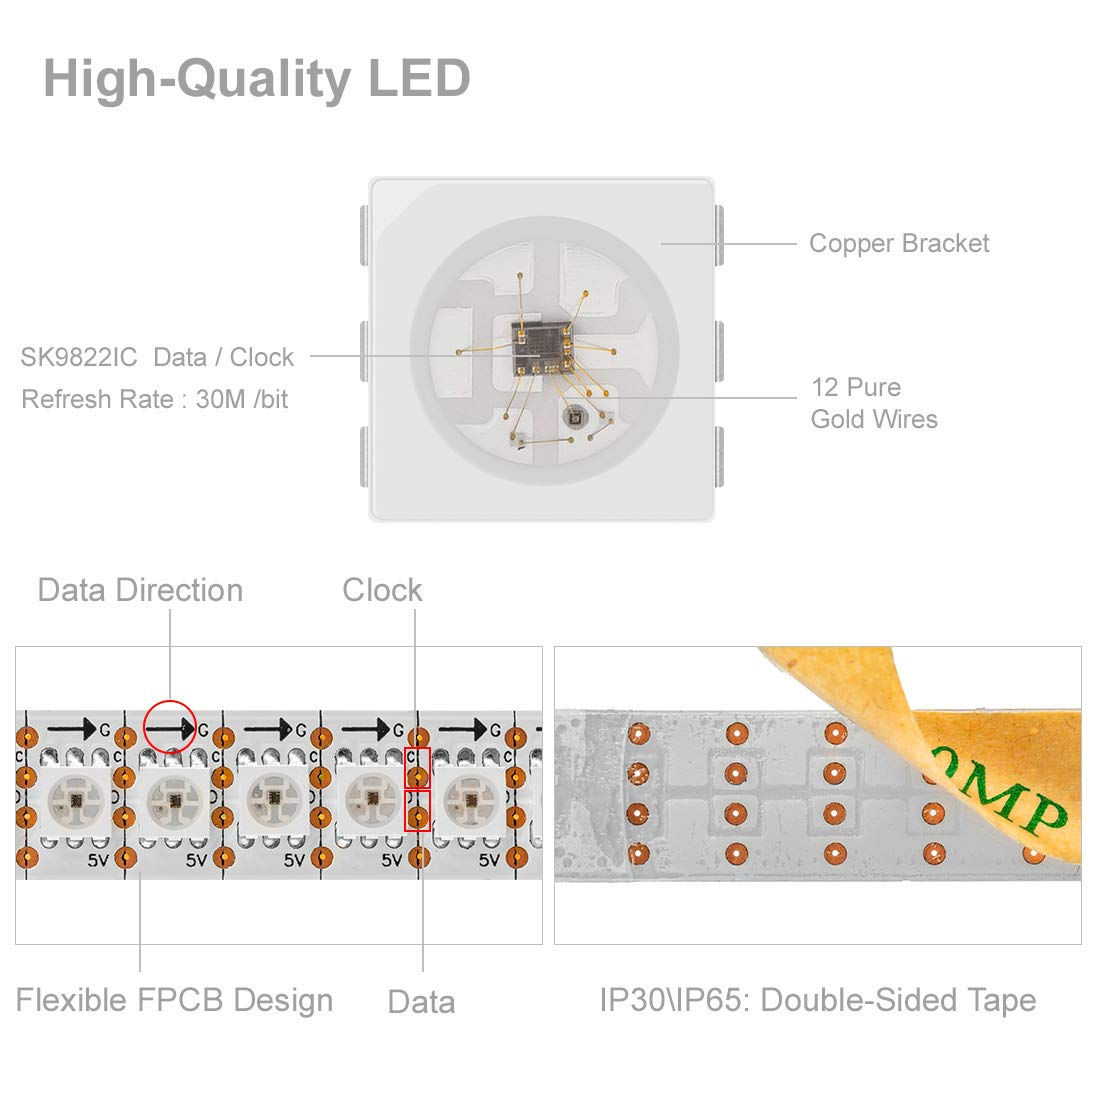 BTF-LIGHTING SK9822 Individually Addressable 3.2ft 1m 144 Pixels//LEDs Non-Waterproof Data and Clock Separately DC5V Full Color Similar to APA102C